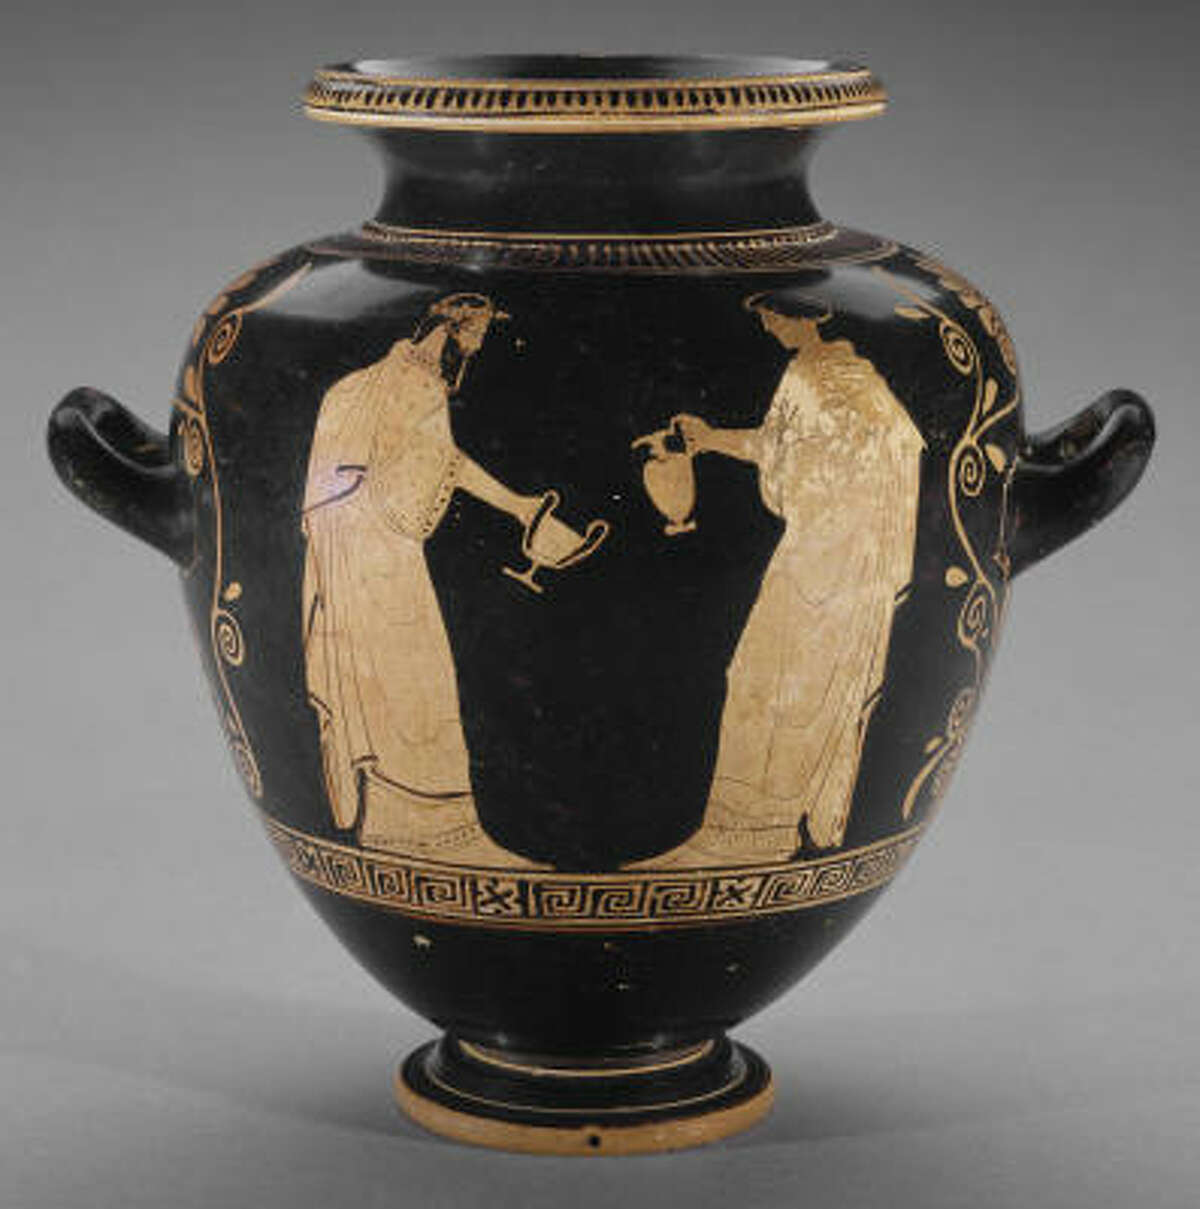 This stamnos -- a Greek wine jar -- is 2,500 years old. The rest of its history is hard to pin down.